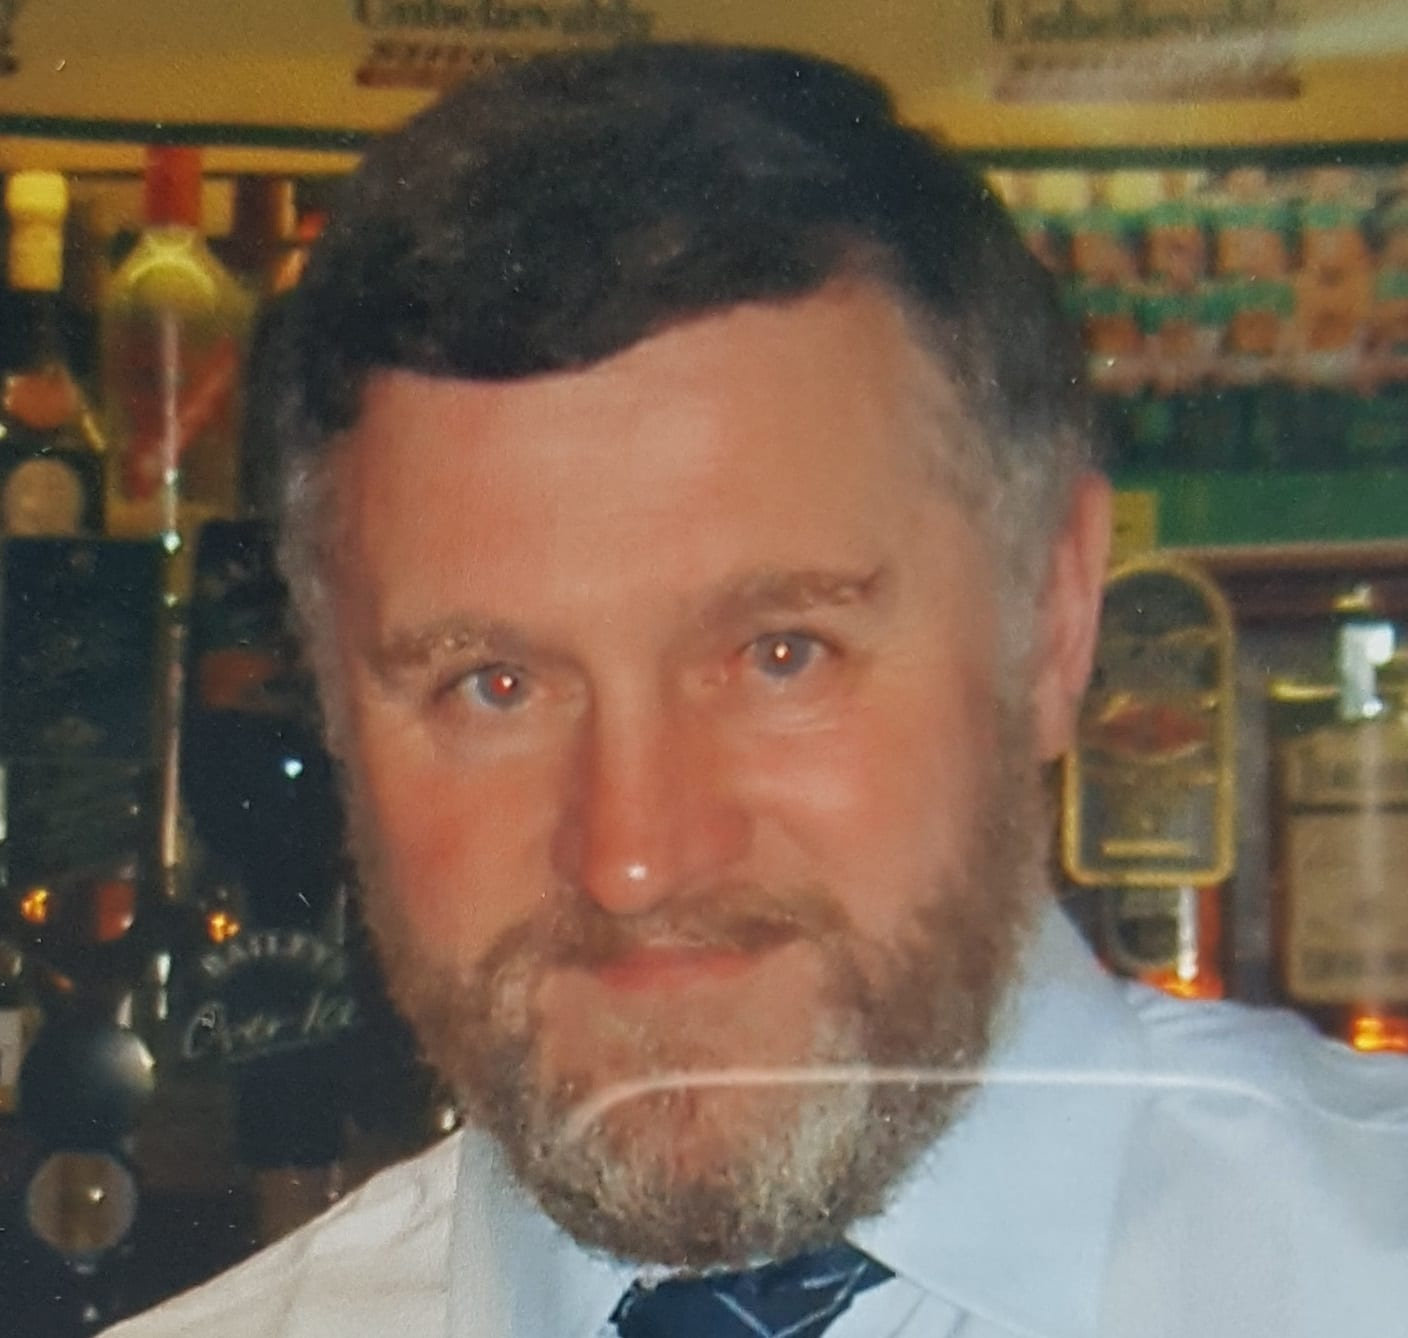 Missing Man from Tuam Galway found safe and well